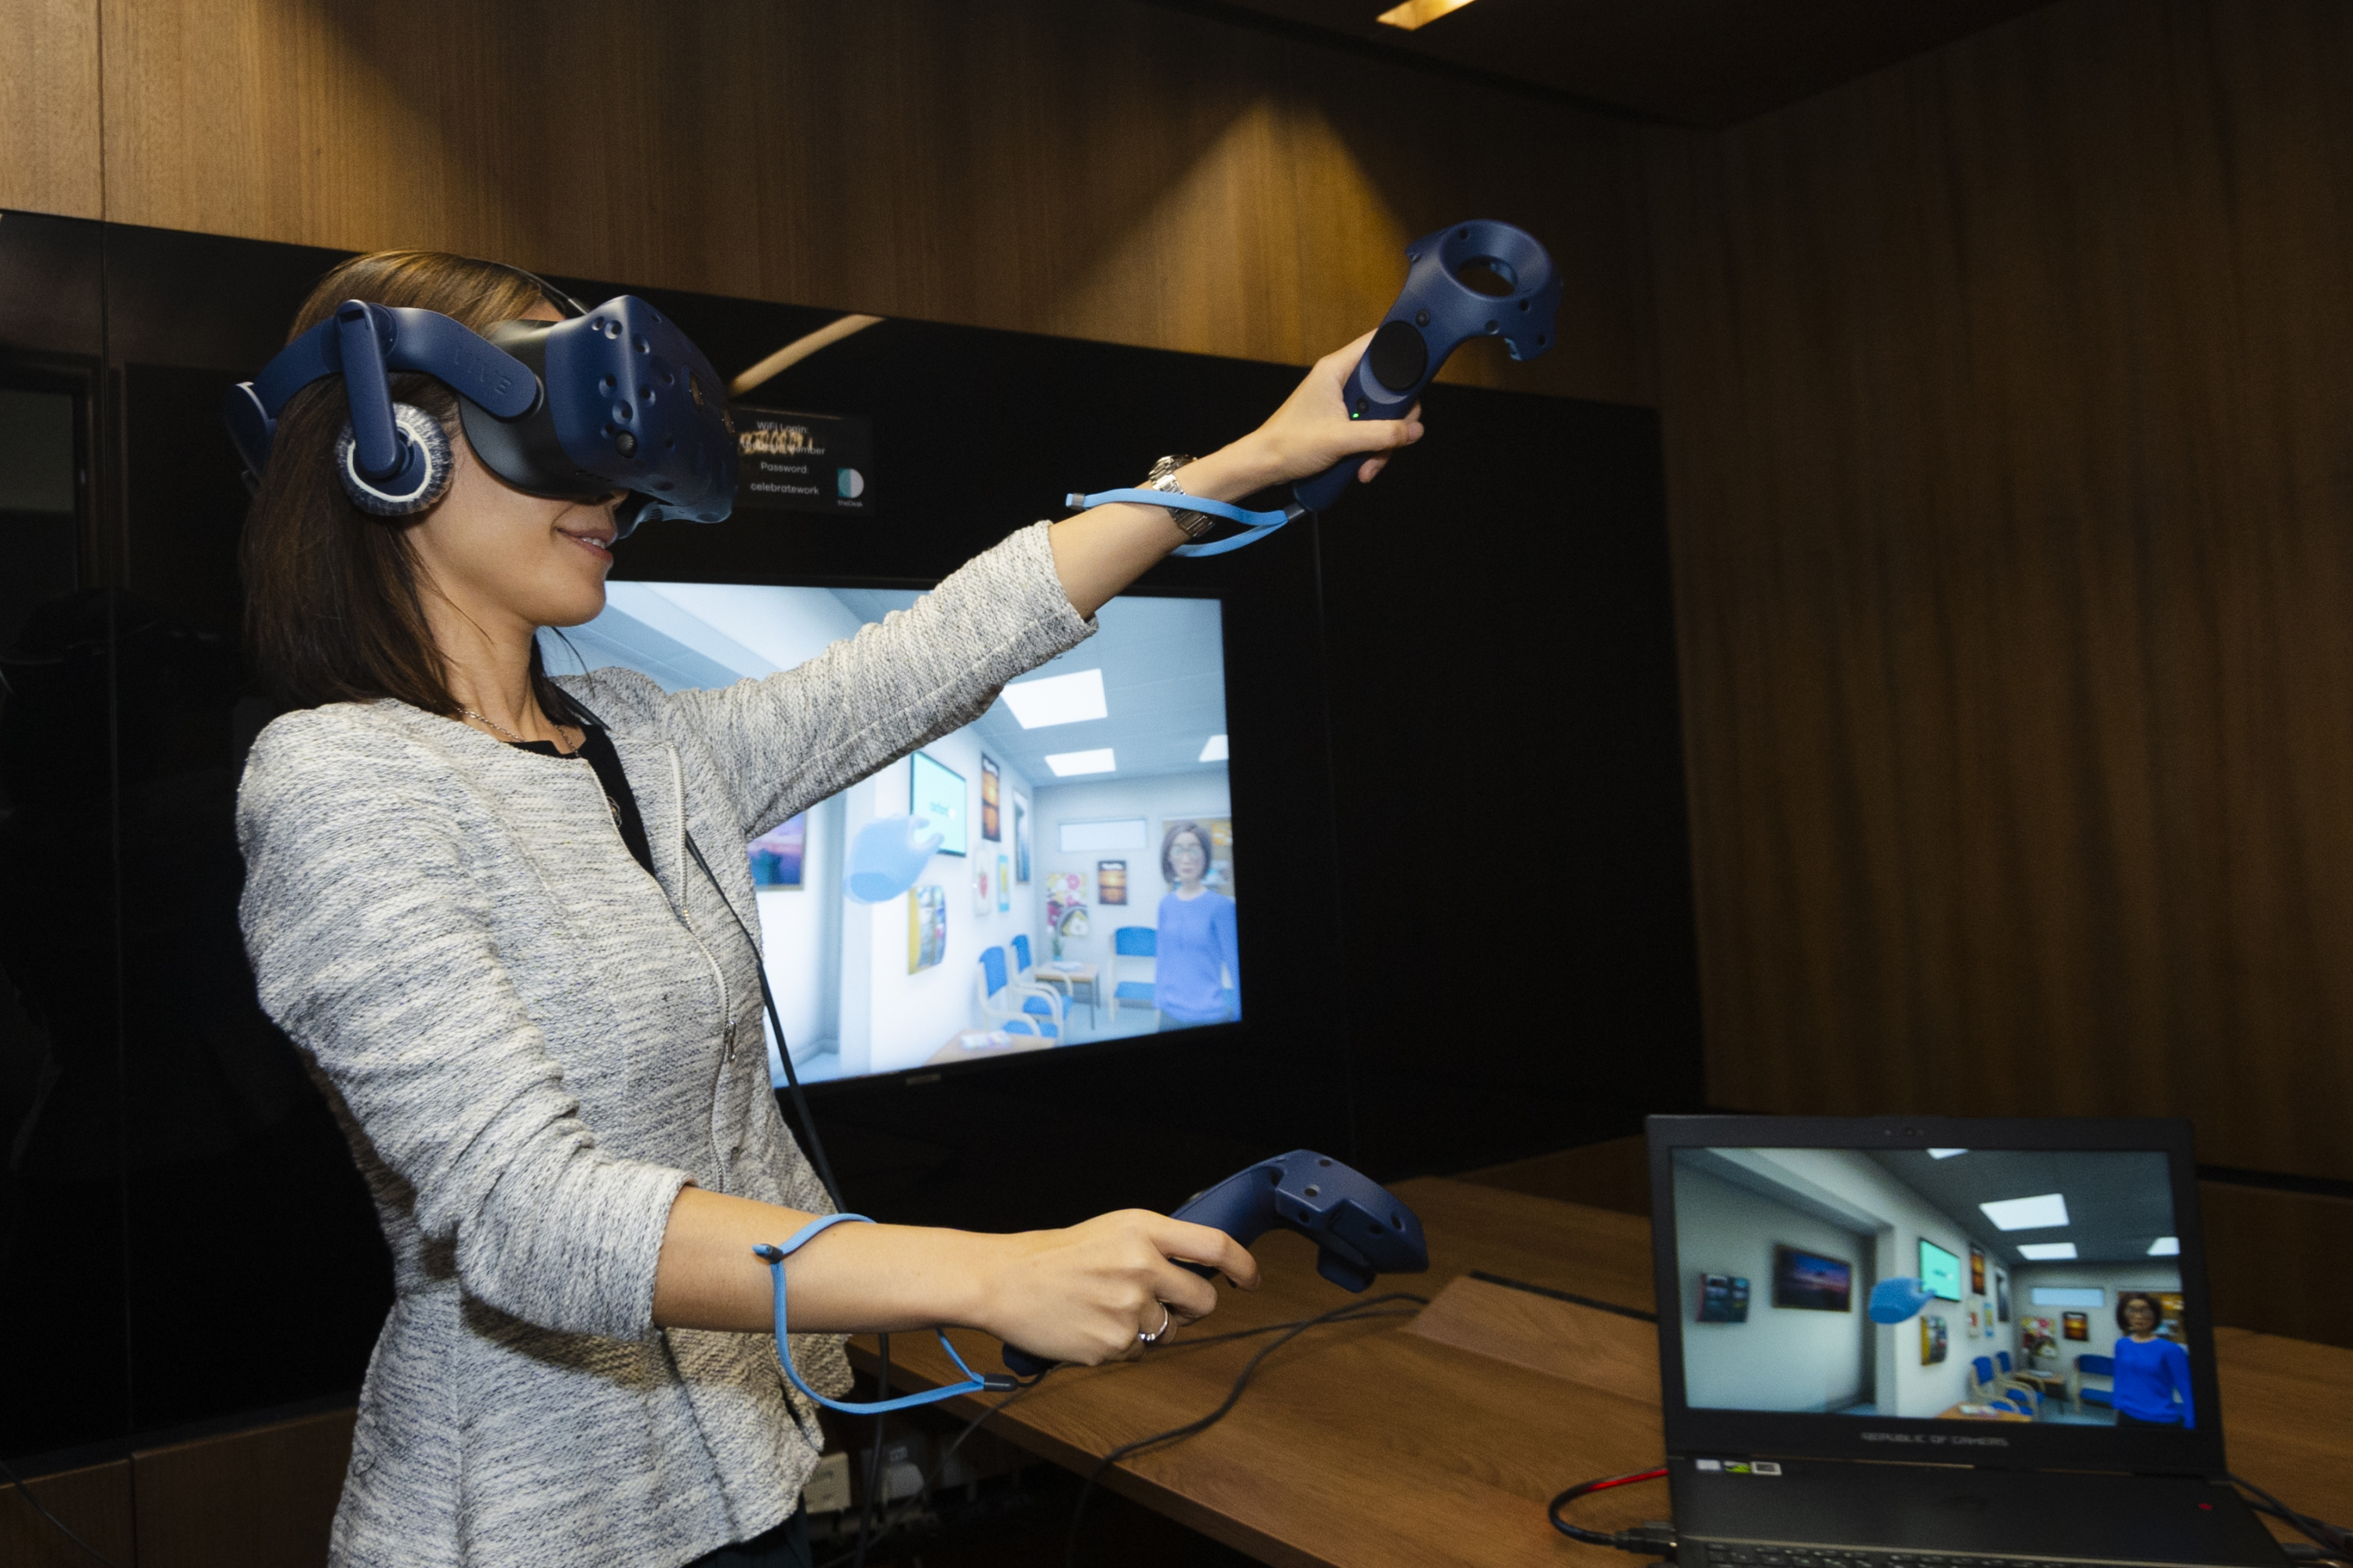 Participants will be guided by the virtual coach through a series of graded tasks in different VR environments that reflect everyday situations they may usually avoid.